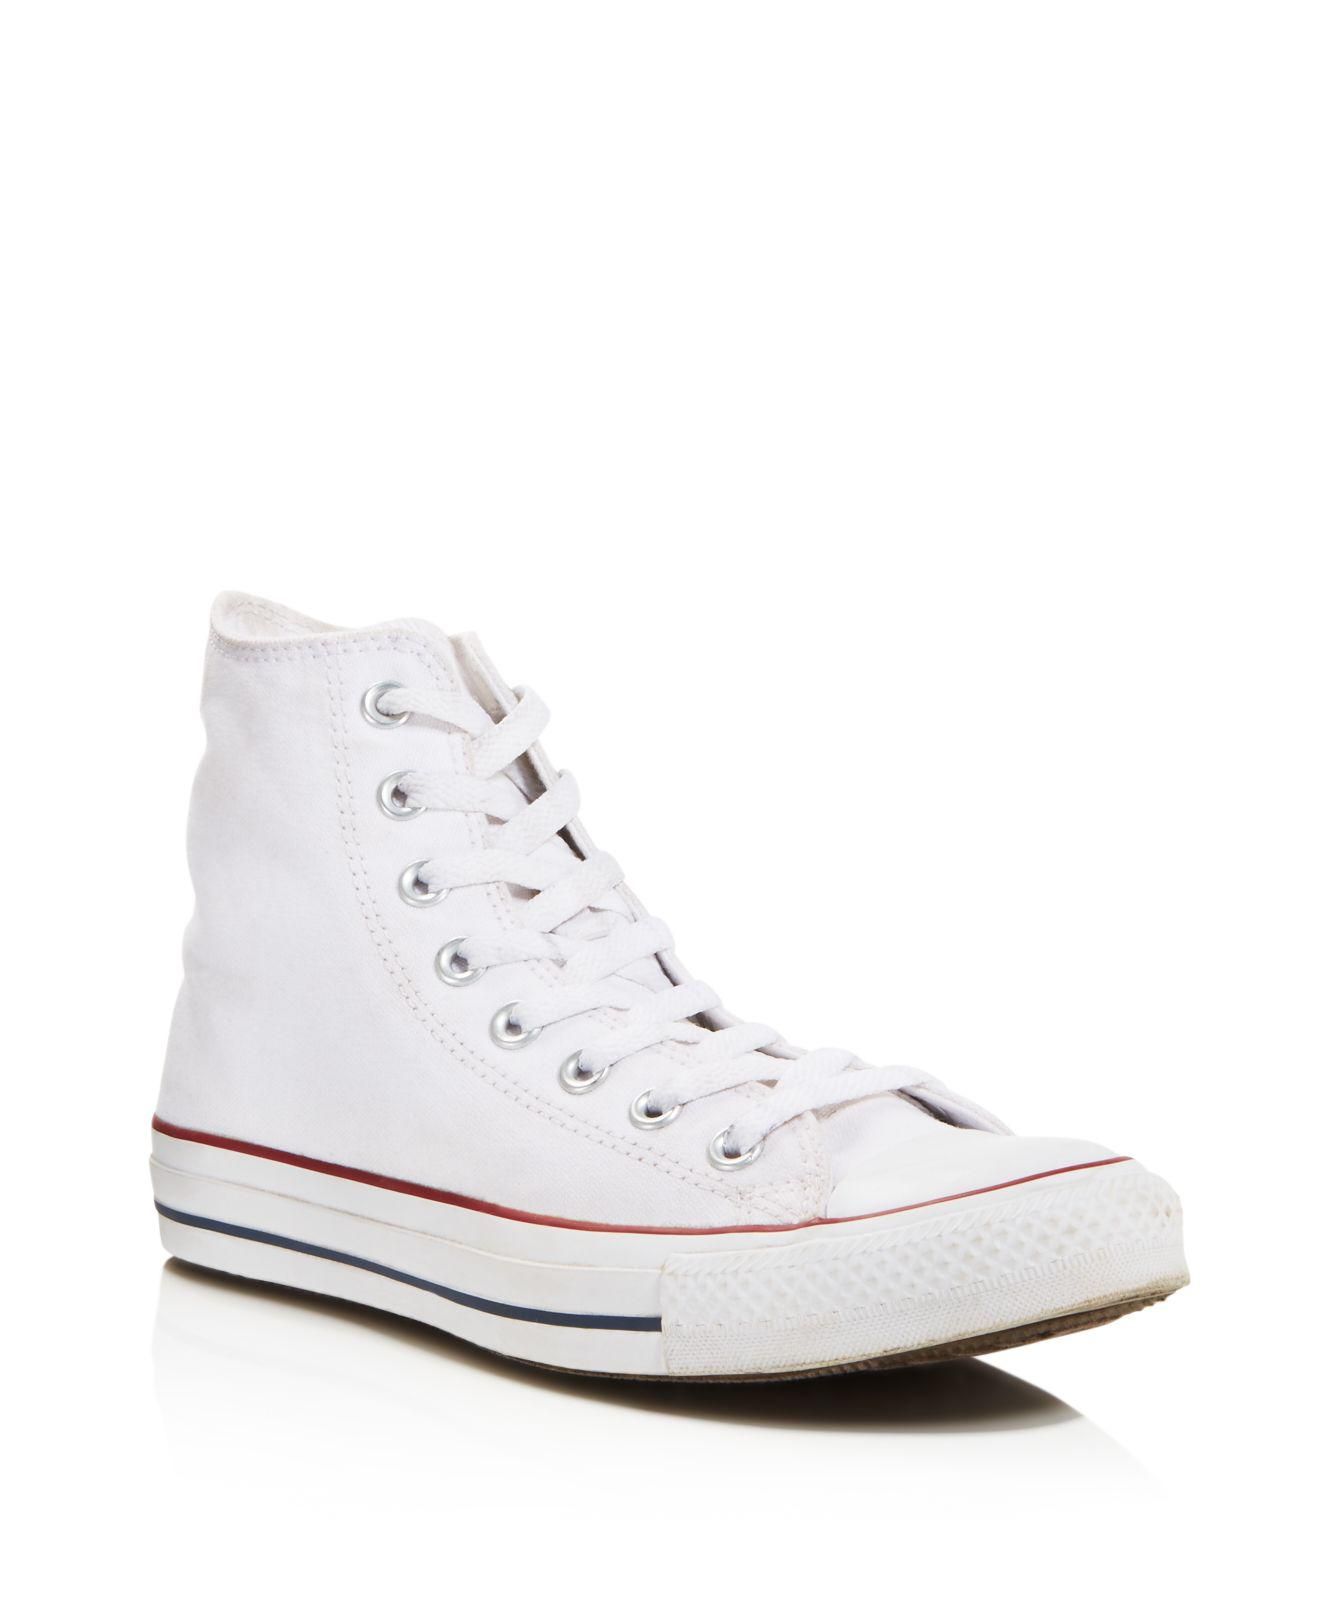 Lyst - Converse Women s Chuck Taylor All Star High Top Sneakers in White 2fee63522